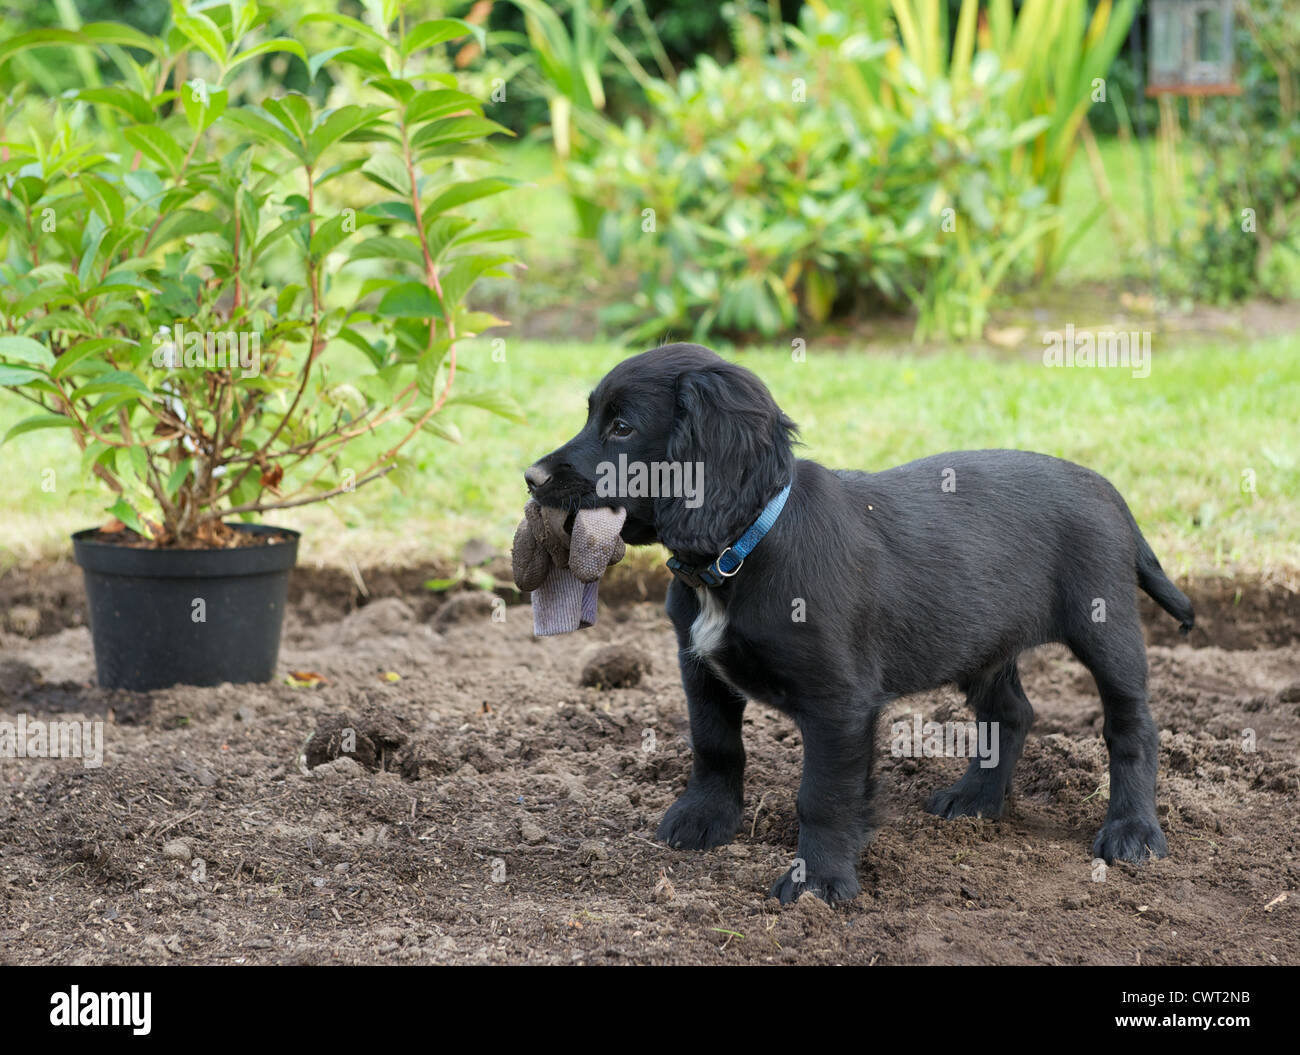 10 week old Working Cocker Spaniel puppy dog. Helping out with the gardening. - Stock Image